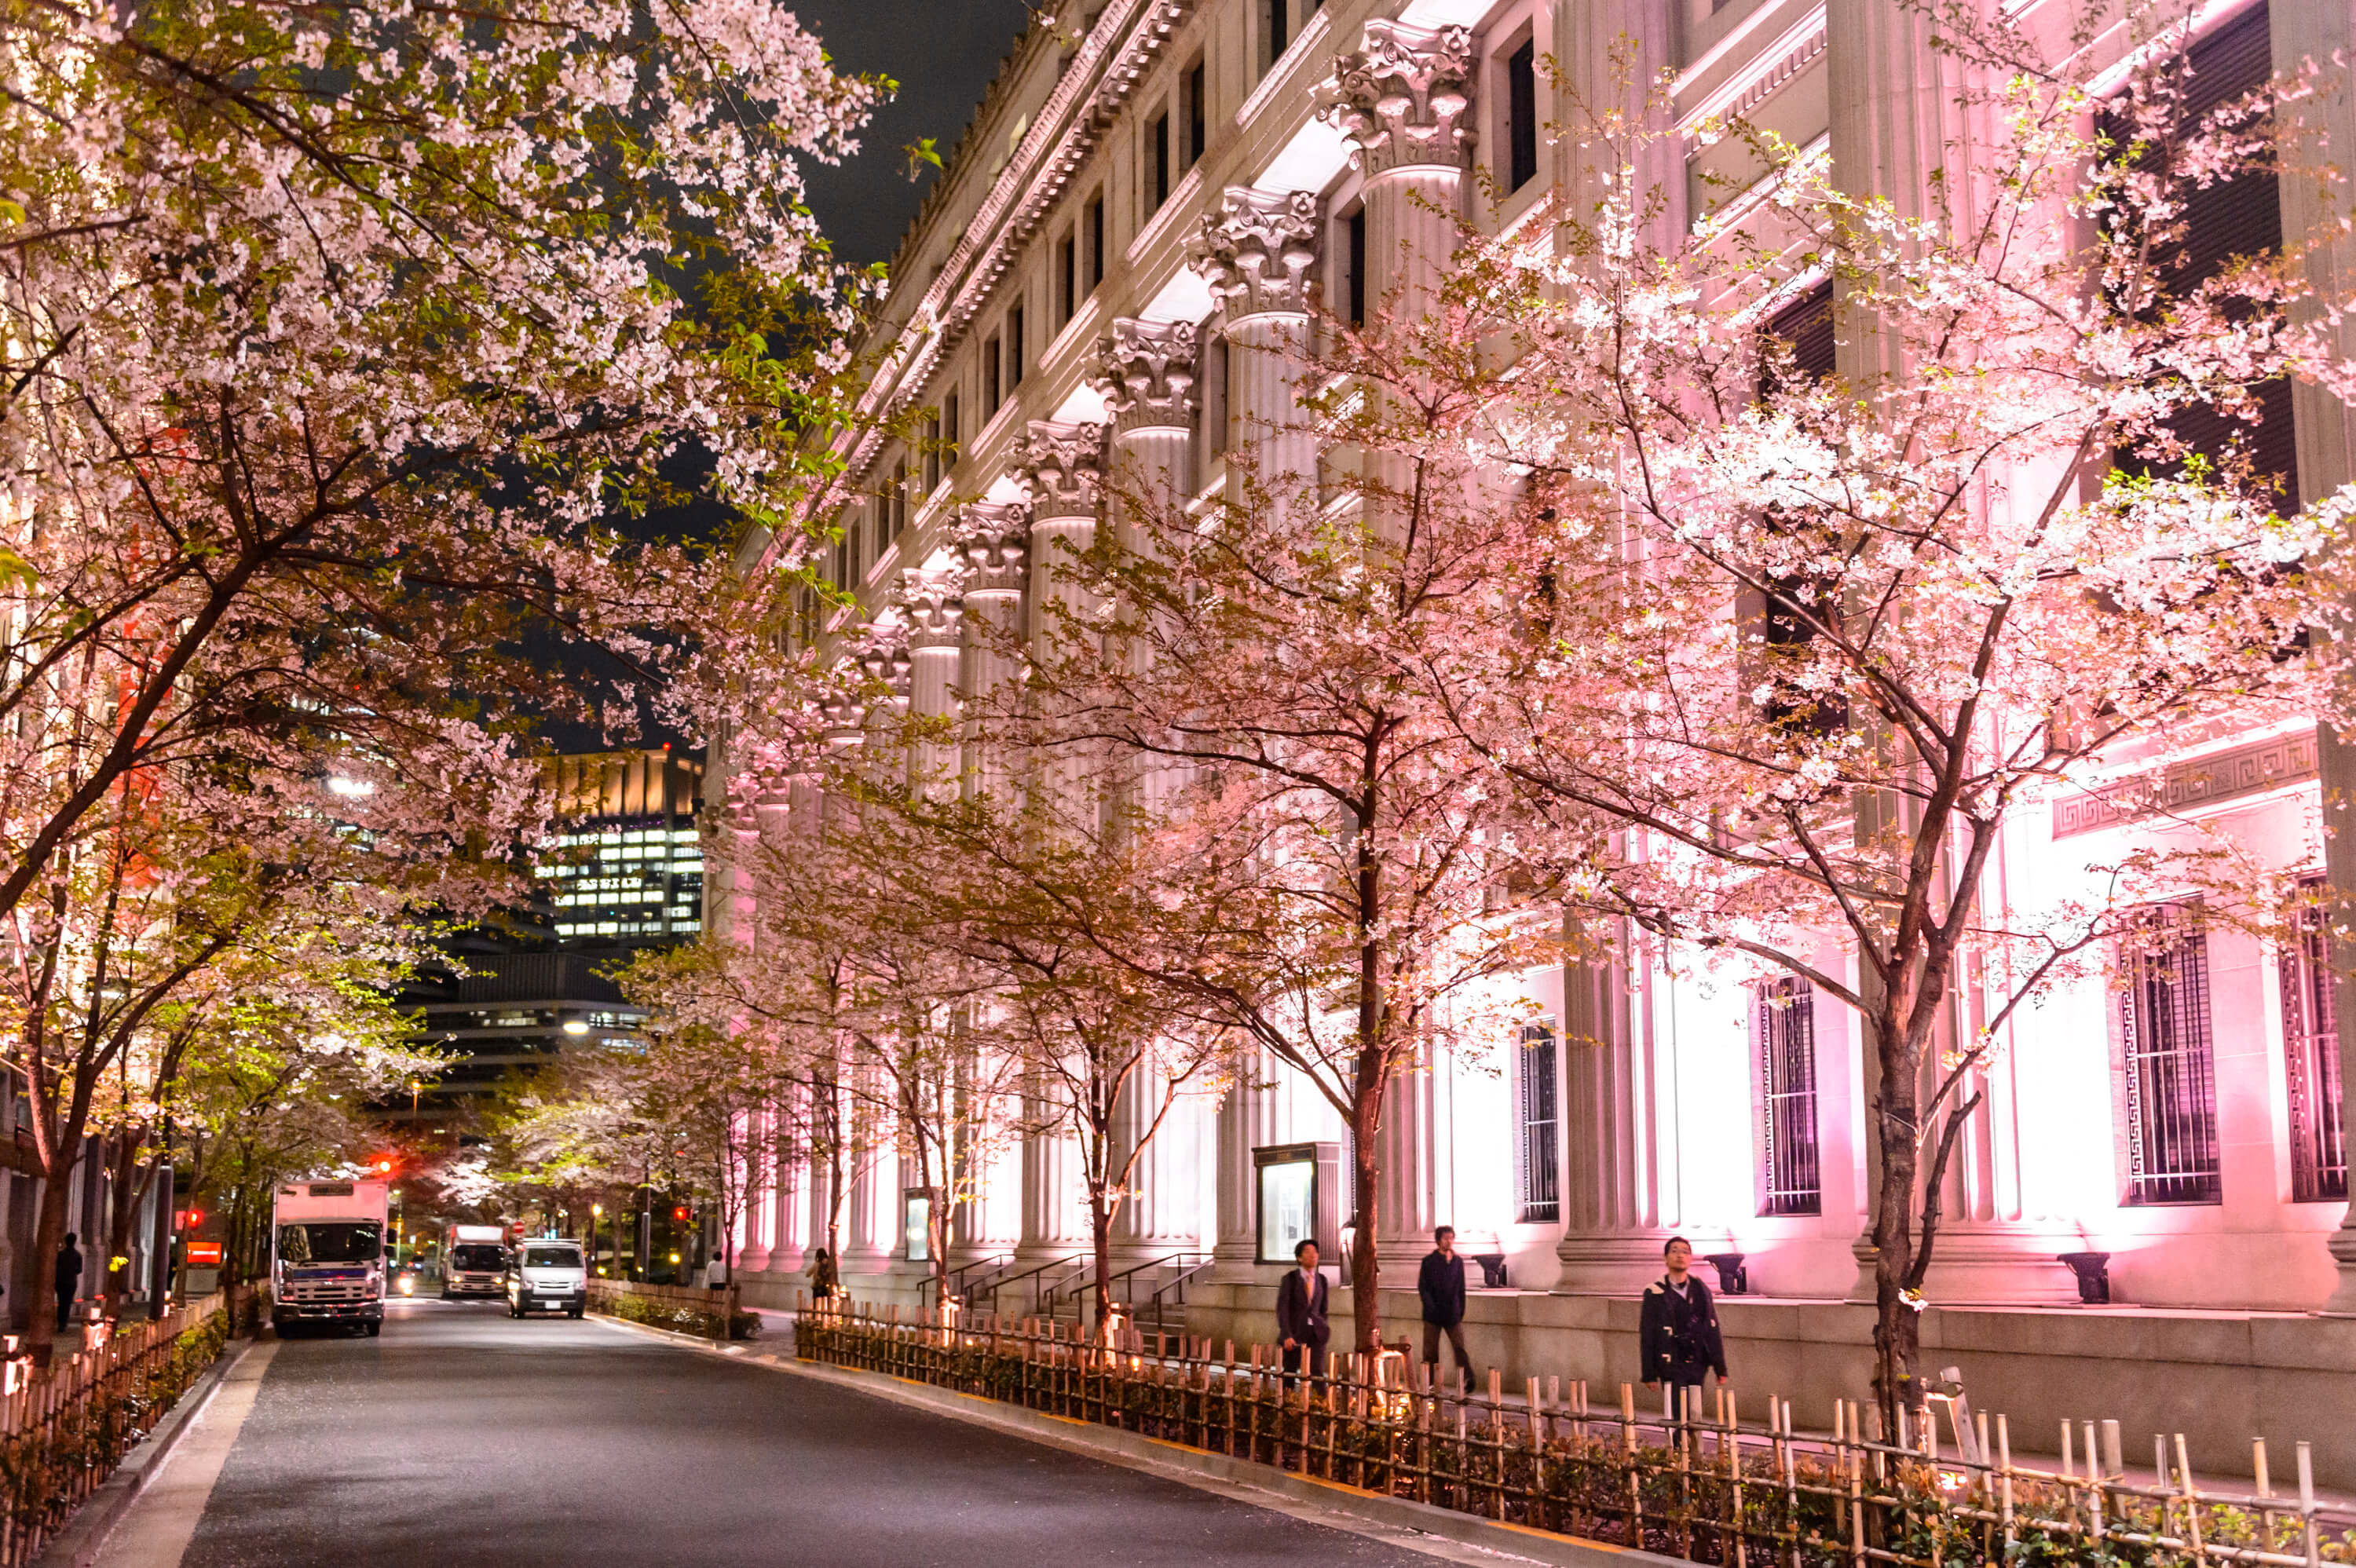 SAKURA FES NIHONBASHI_OFF TO MEET 日本橋 桜 フェス_Sakura Light Up_三井本館(過去写真)